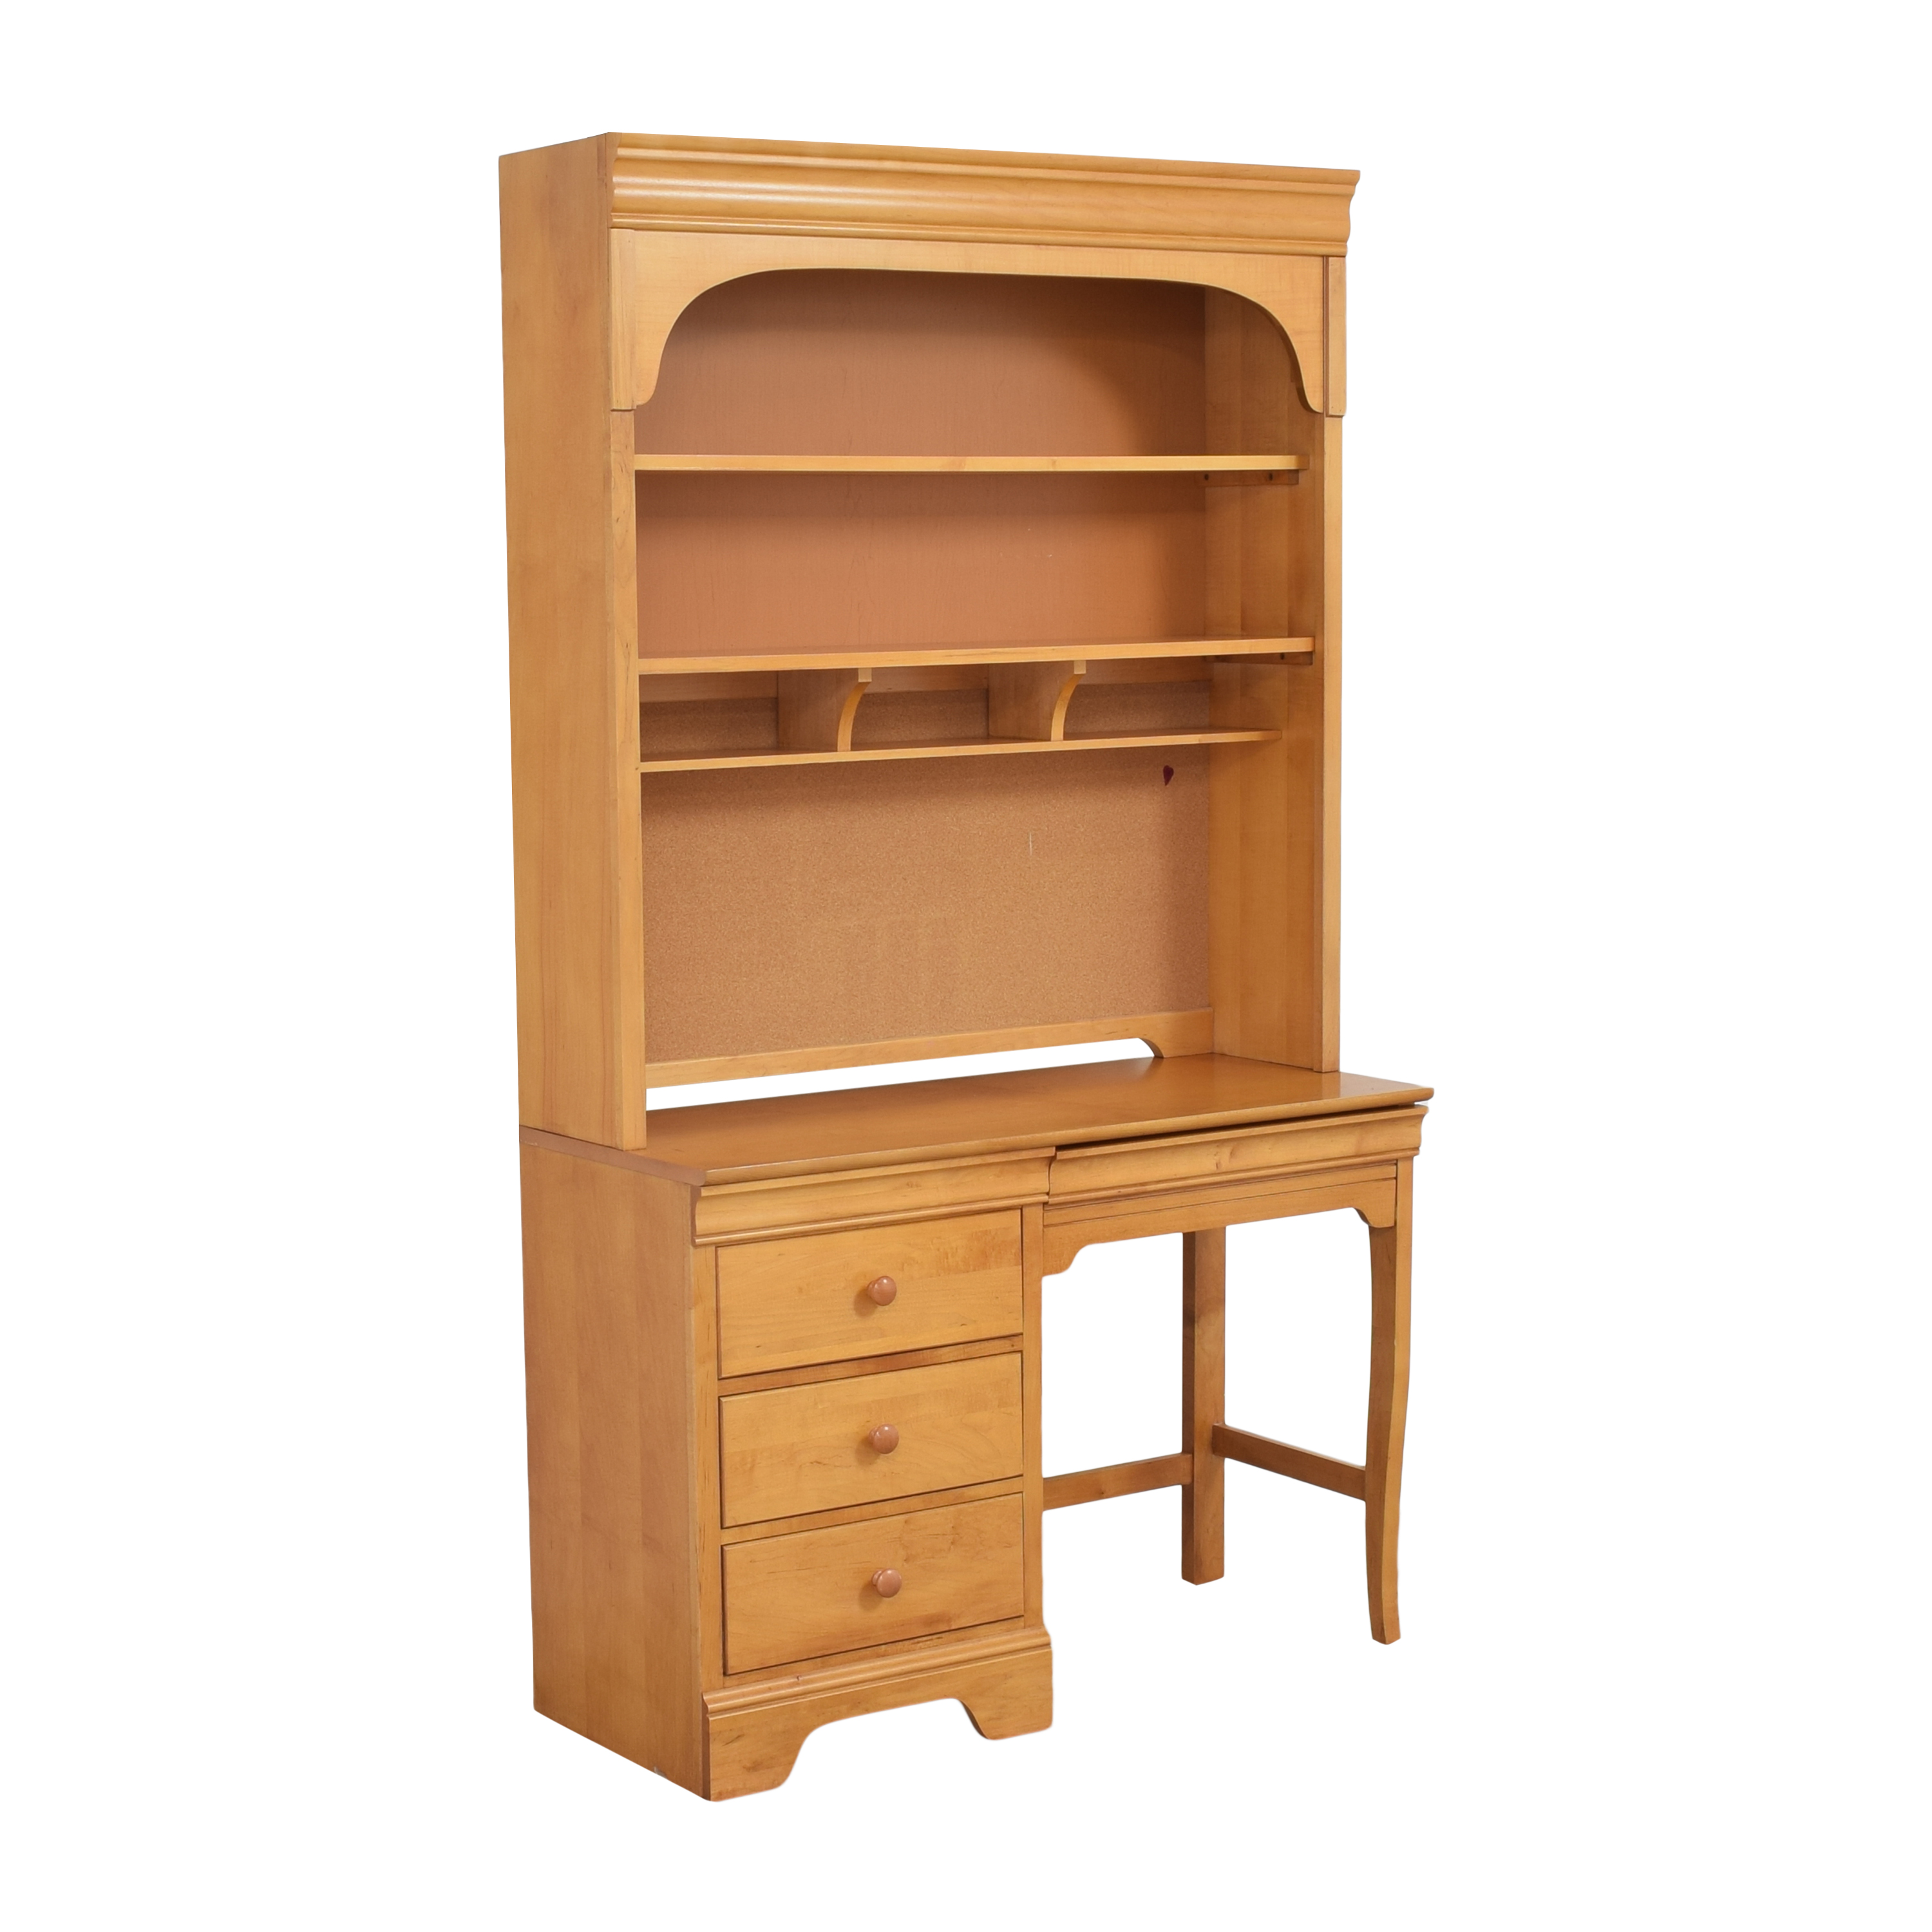 Stanley Furniture Stanley Furniture Young America Student Desk with Hutch nj